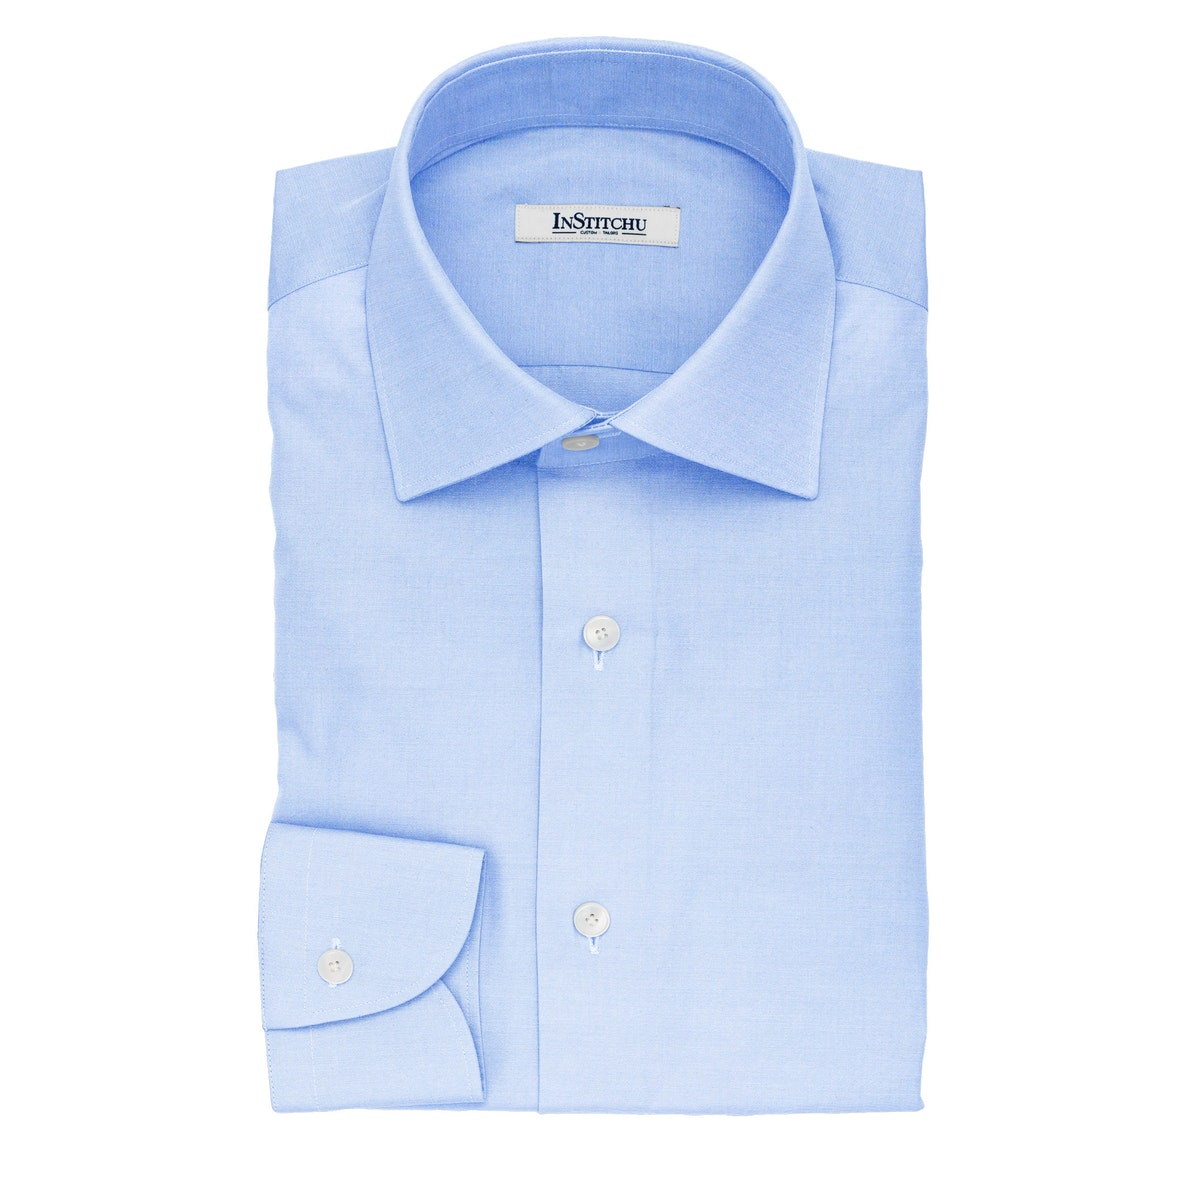 InStitchu Collection The Scalfaro Blue Cotton Shirt